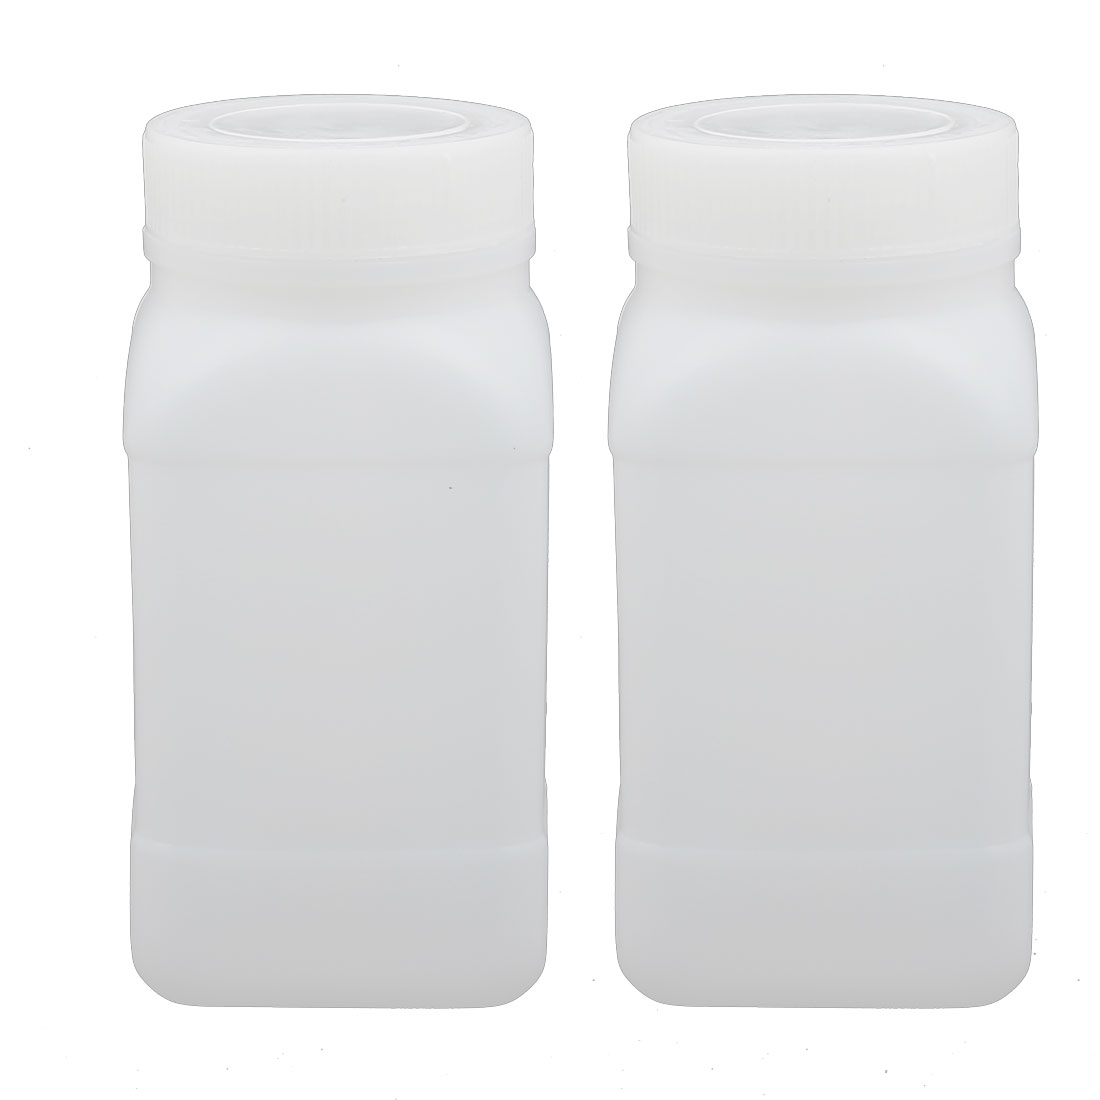 2pcs 250ml HDPE Plastic Container Wide Mouth Bottle White w Thicker Cover